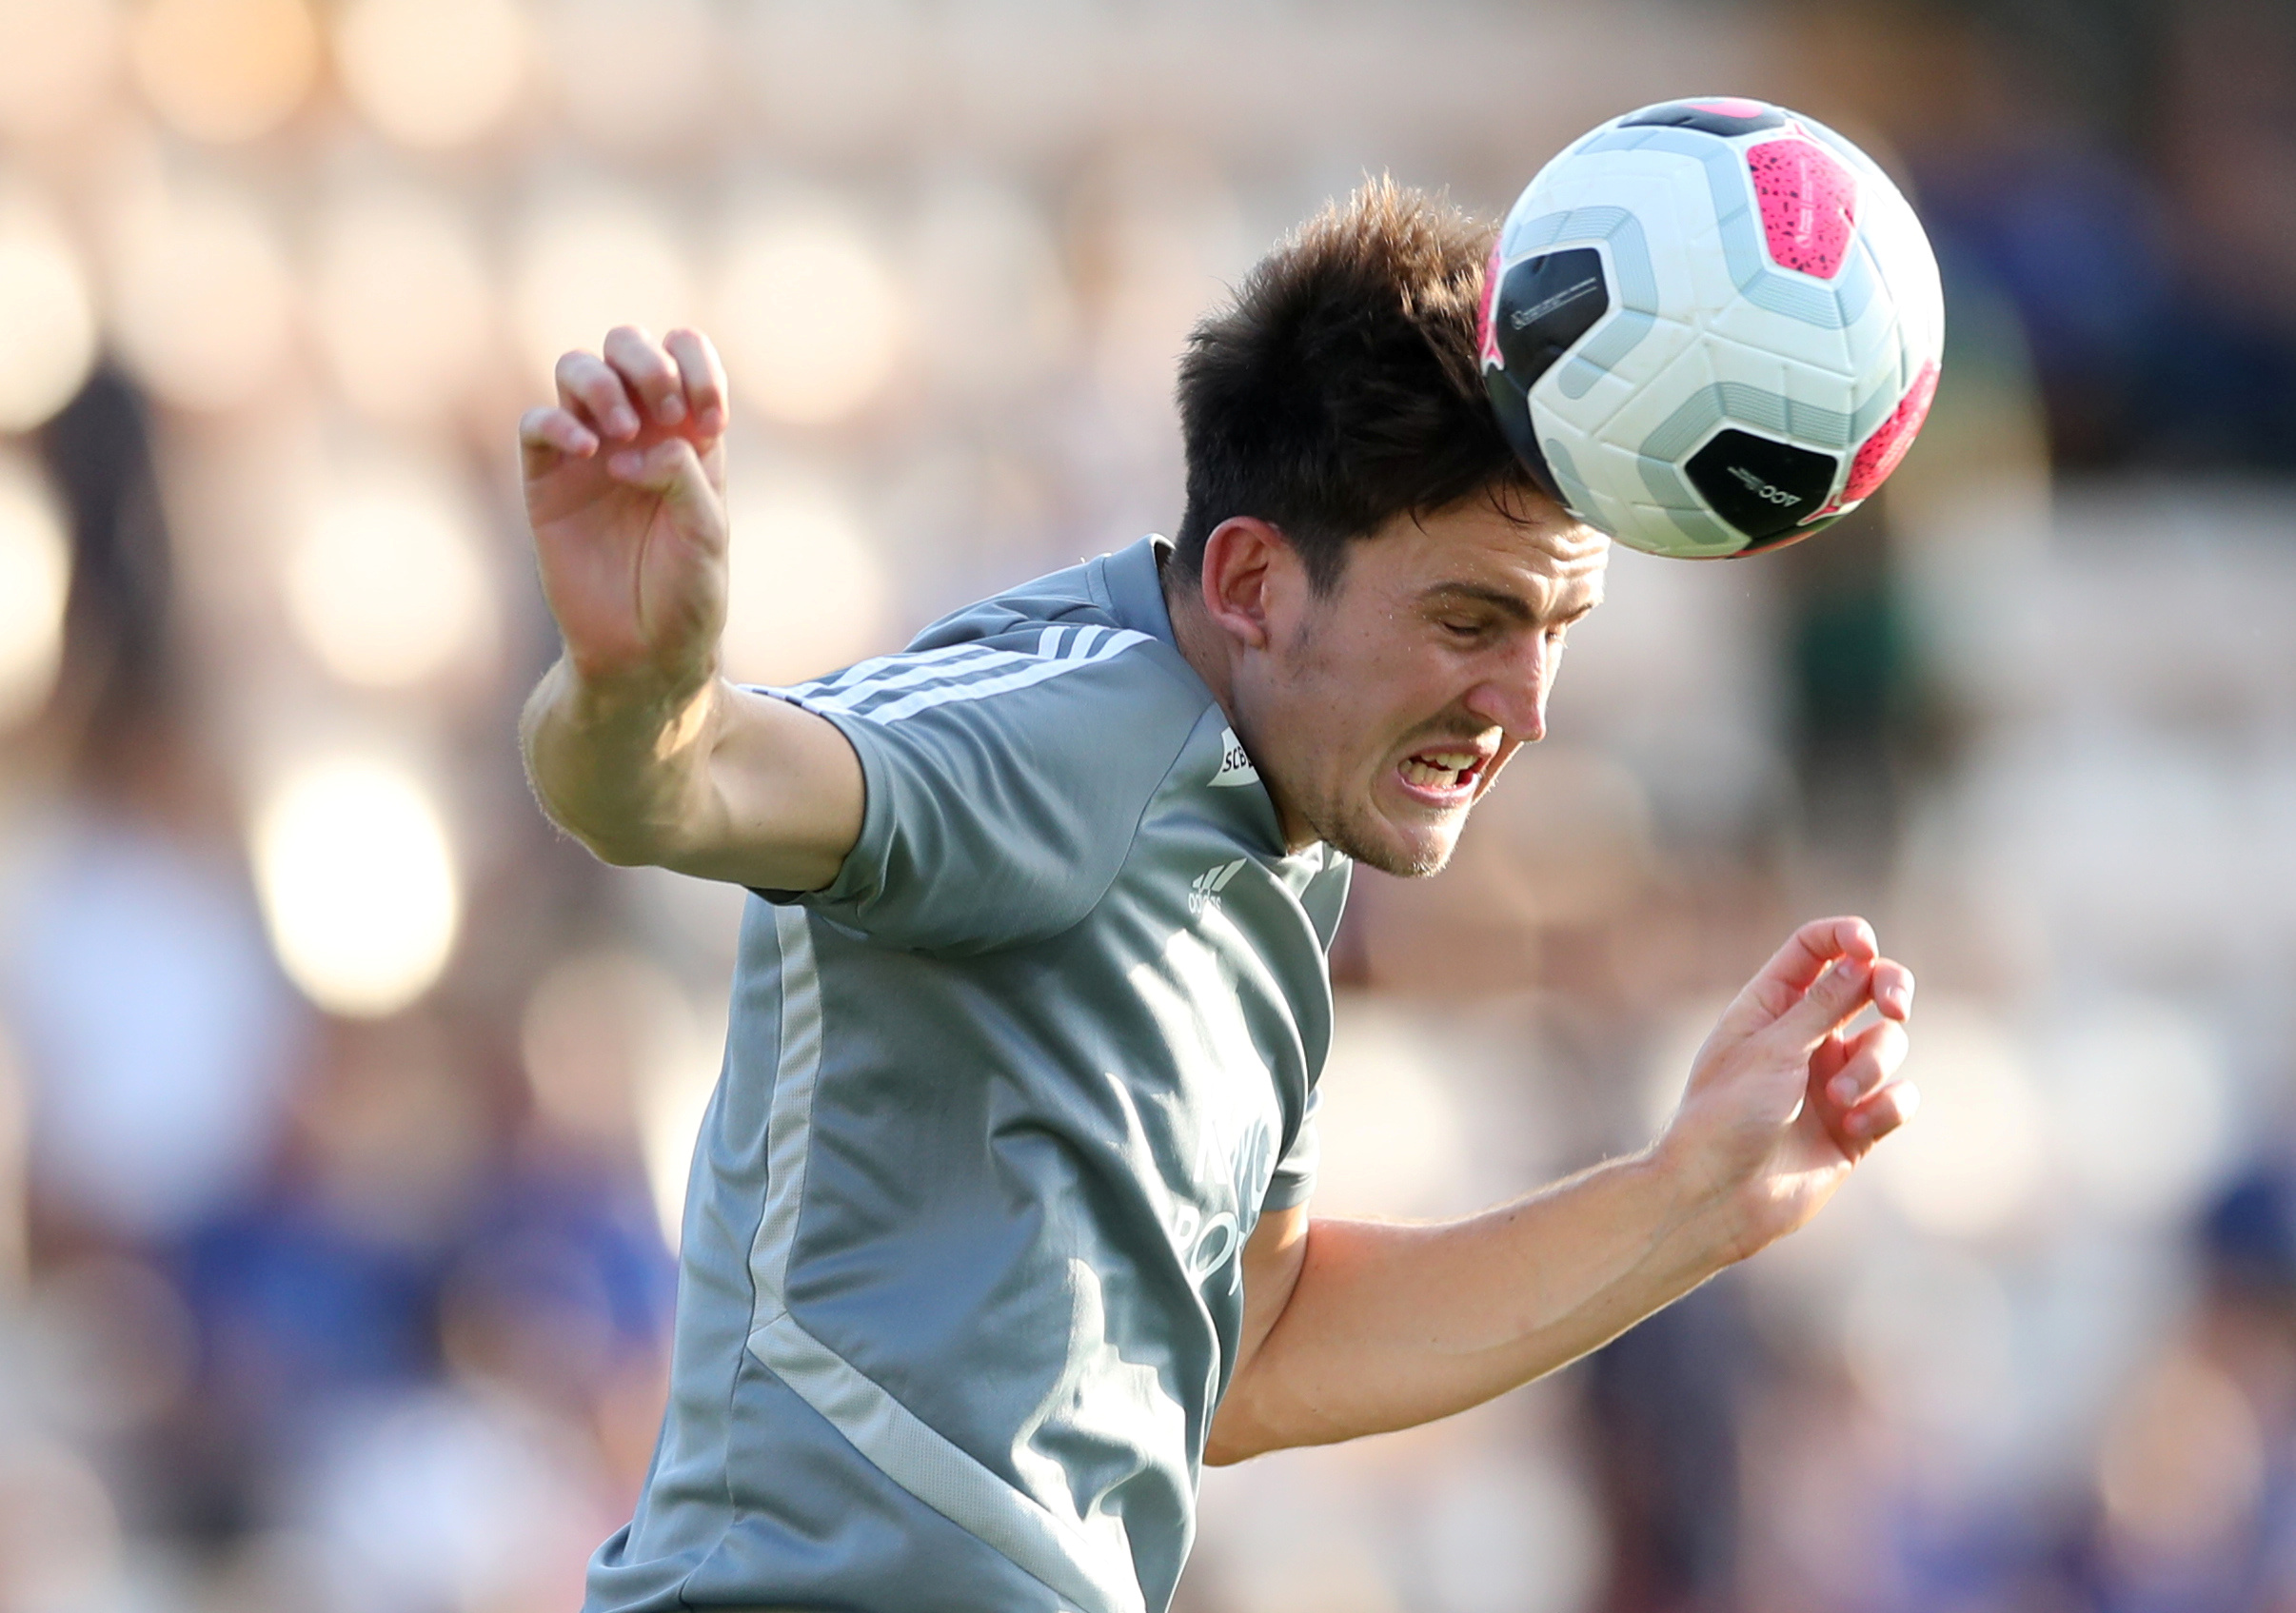 Napoli head makes ridiculous comments out of frustration about Maguire